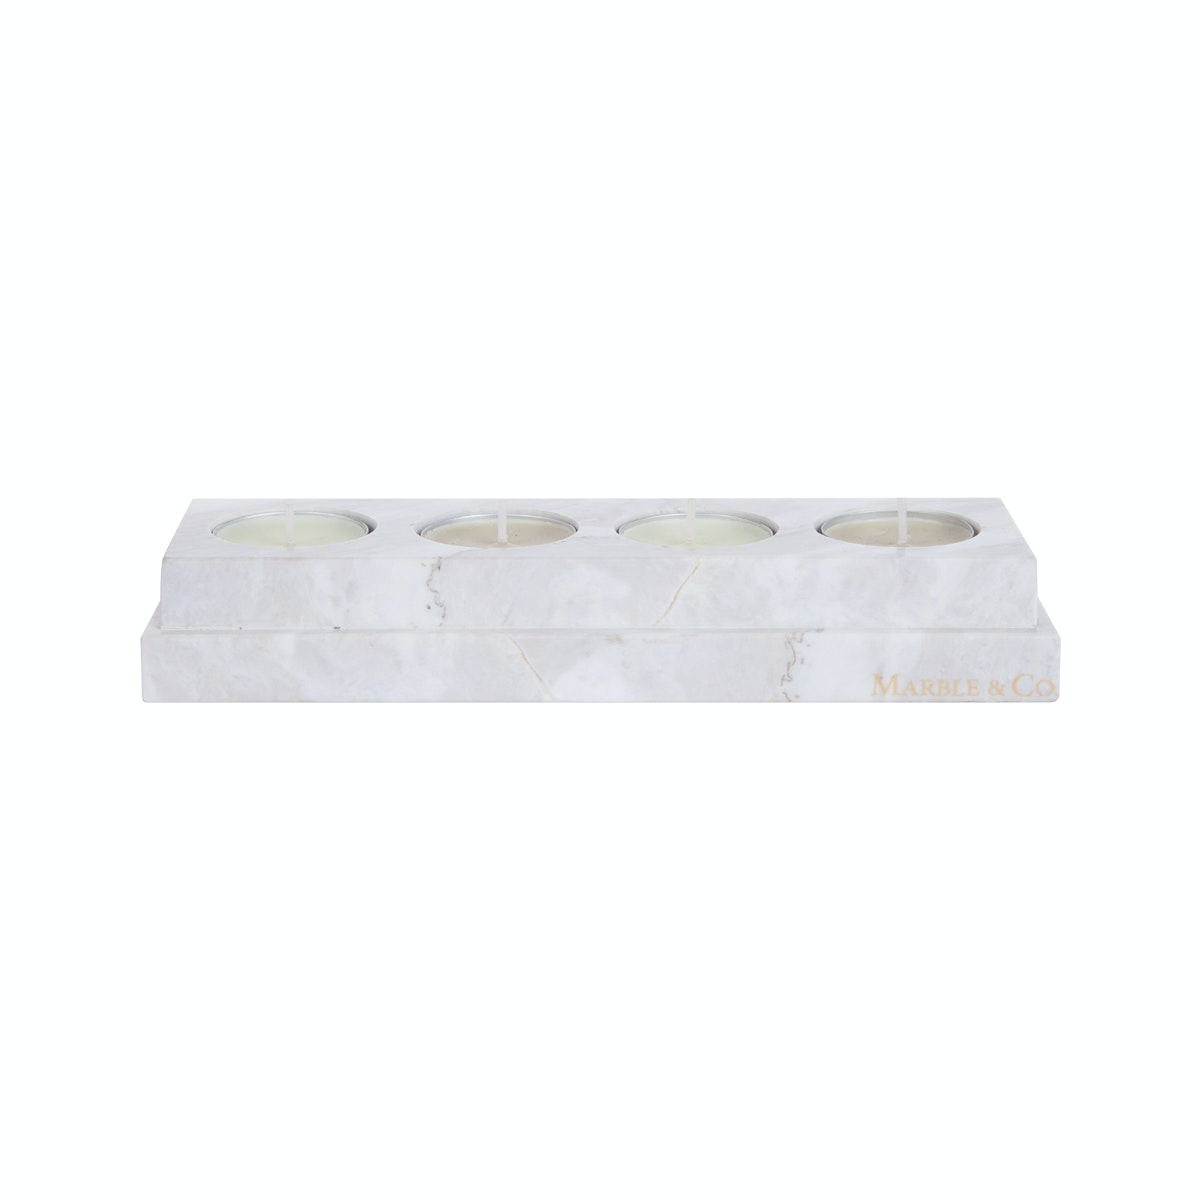 Marble & Co Candle Holder Marble Putih